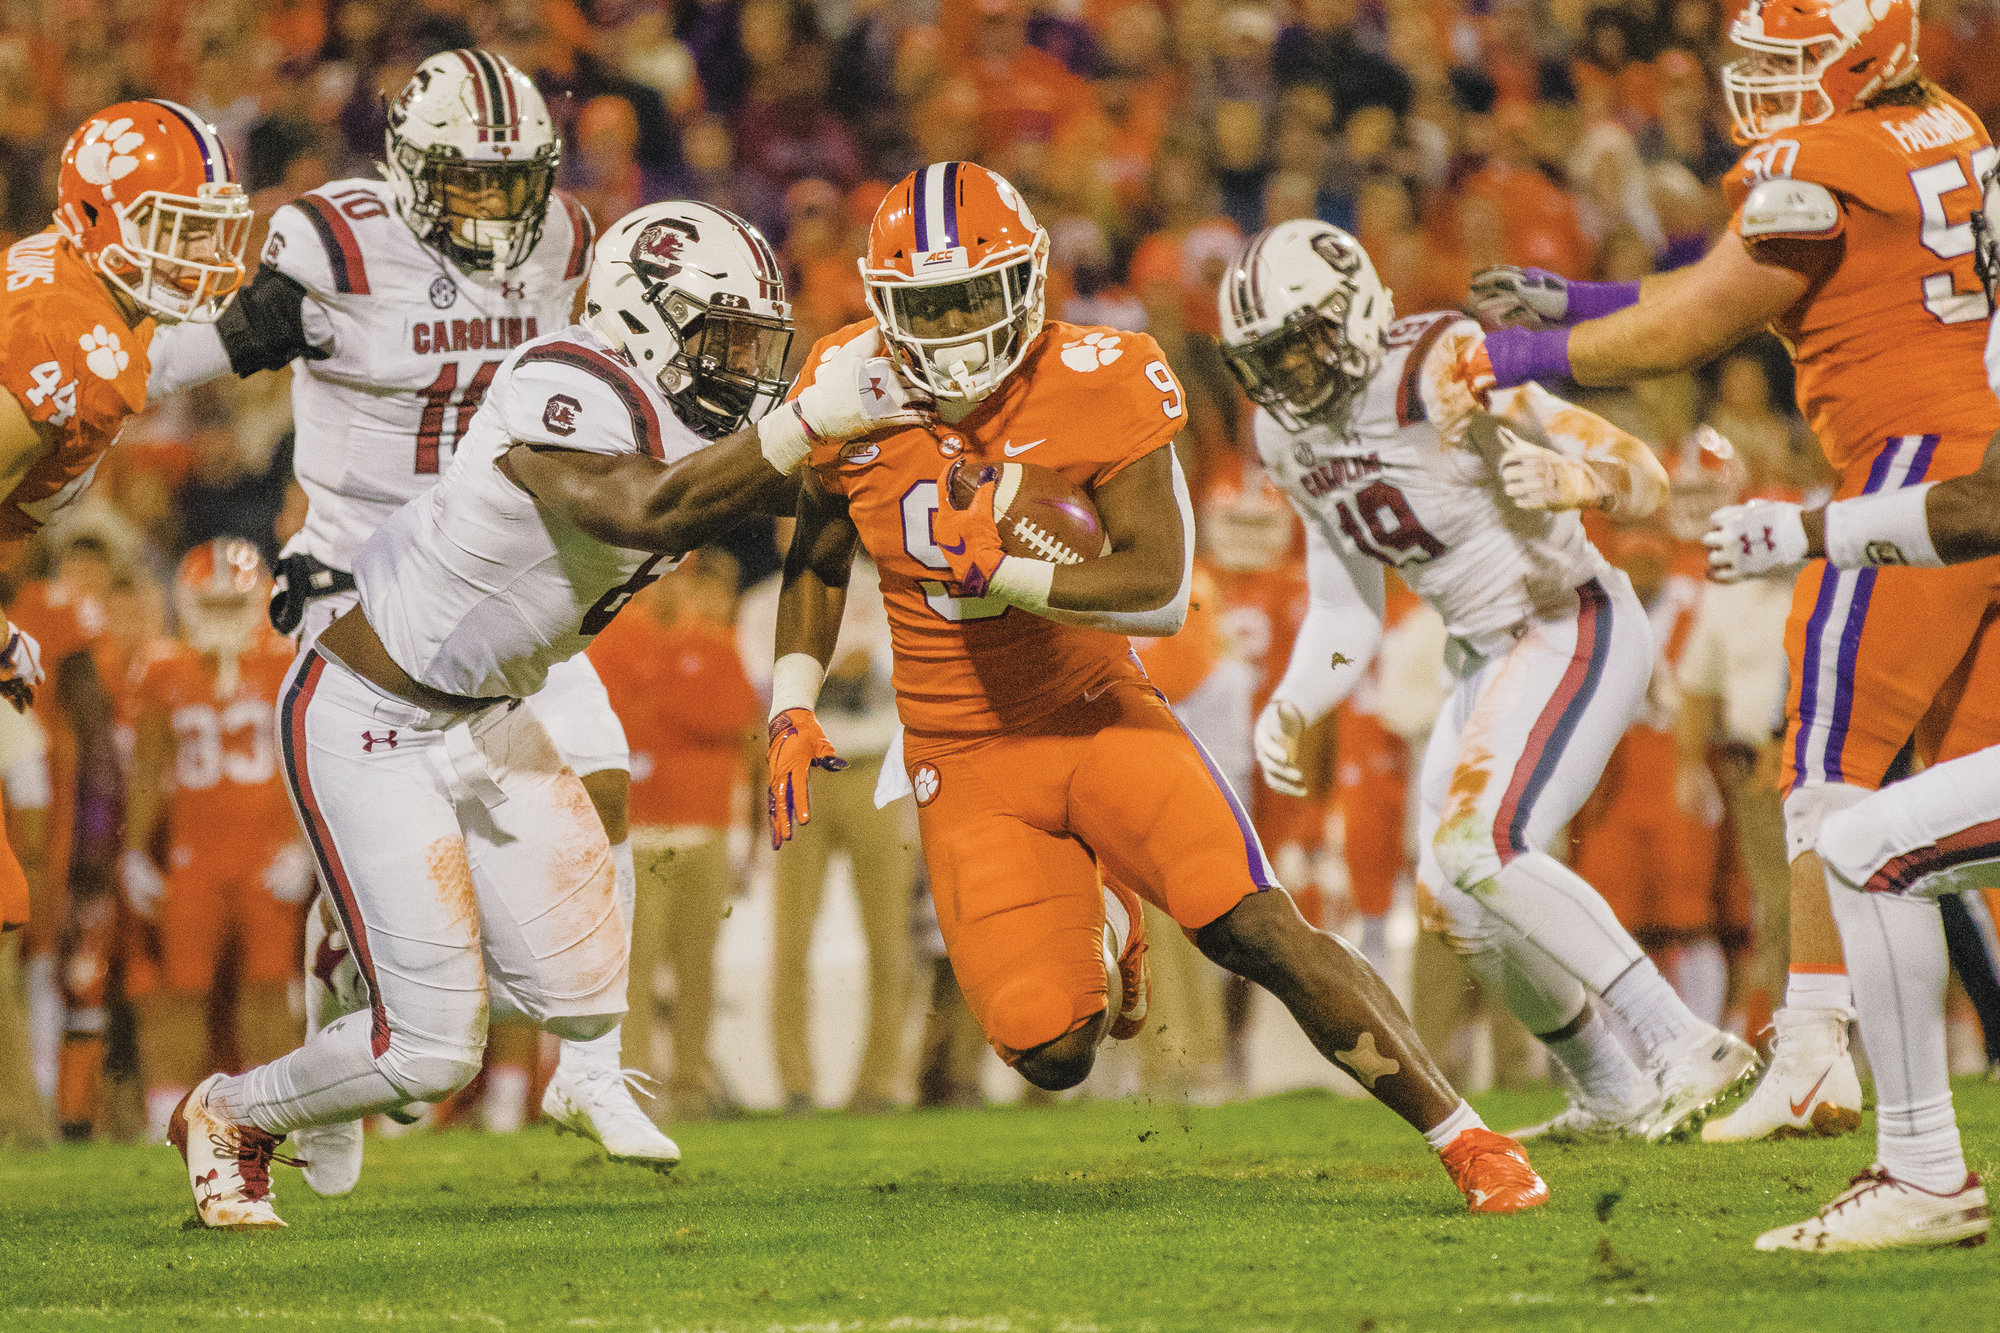 Clemson running back Travis Etienne (9) runs with the ball as South Carolina linebacker T.J. Brunson tries to get a hold of him during the Tigers' 56-35 victory on Saturday in Clemson. The Tigers will take on Pittsburgh in the Atlantic Coast Conference championship game this Saturday in Charlotte.